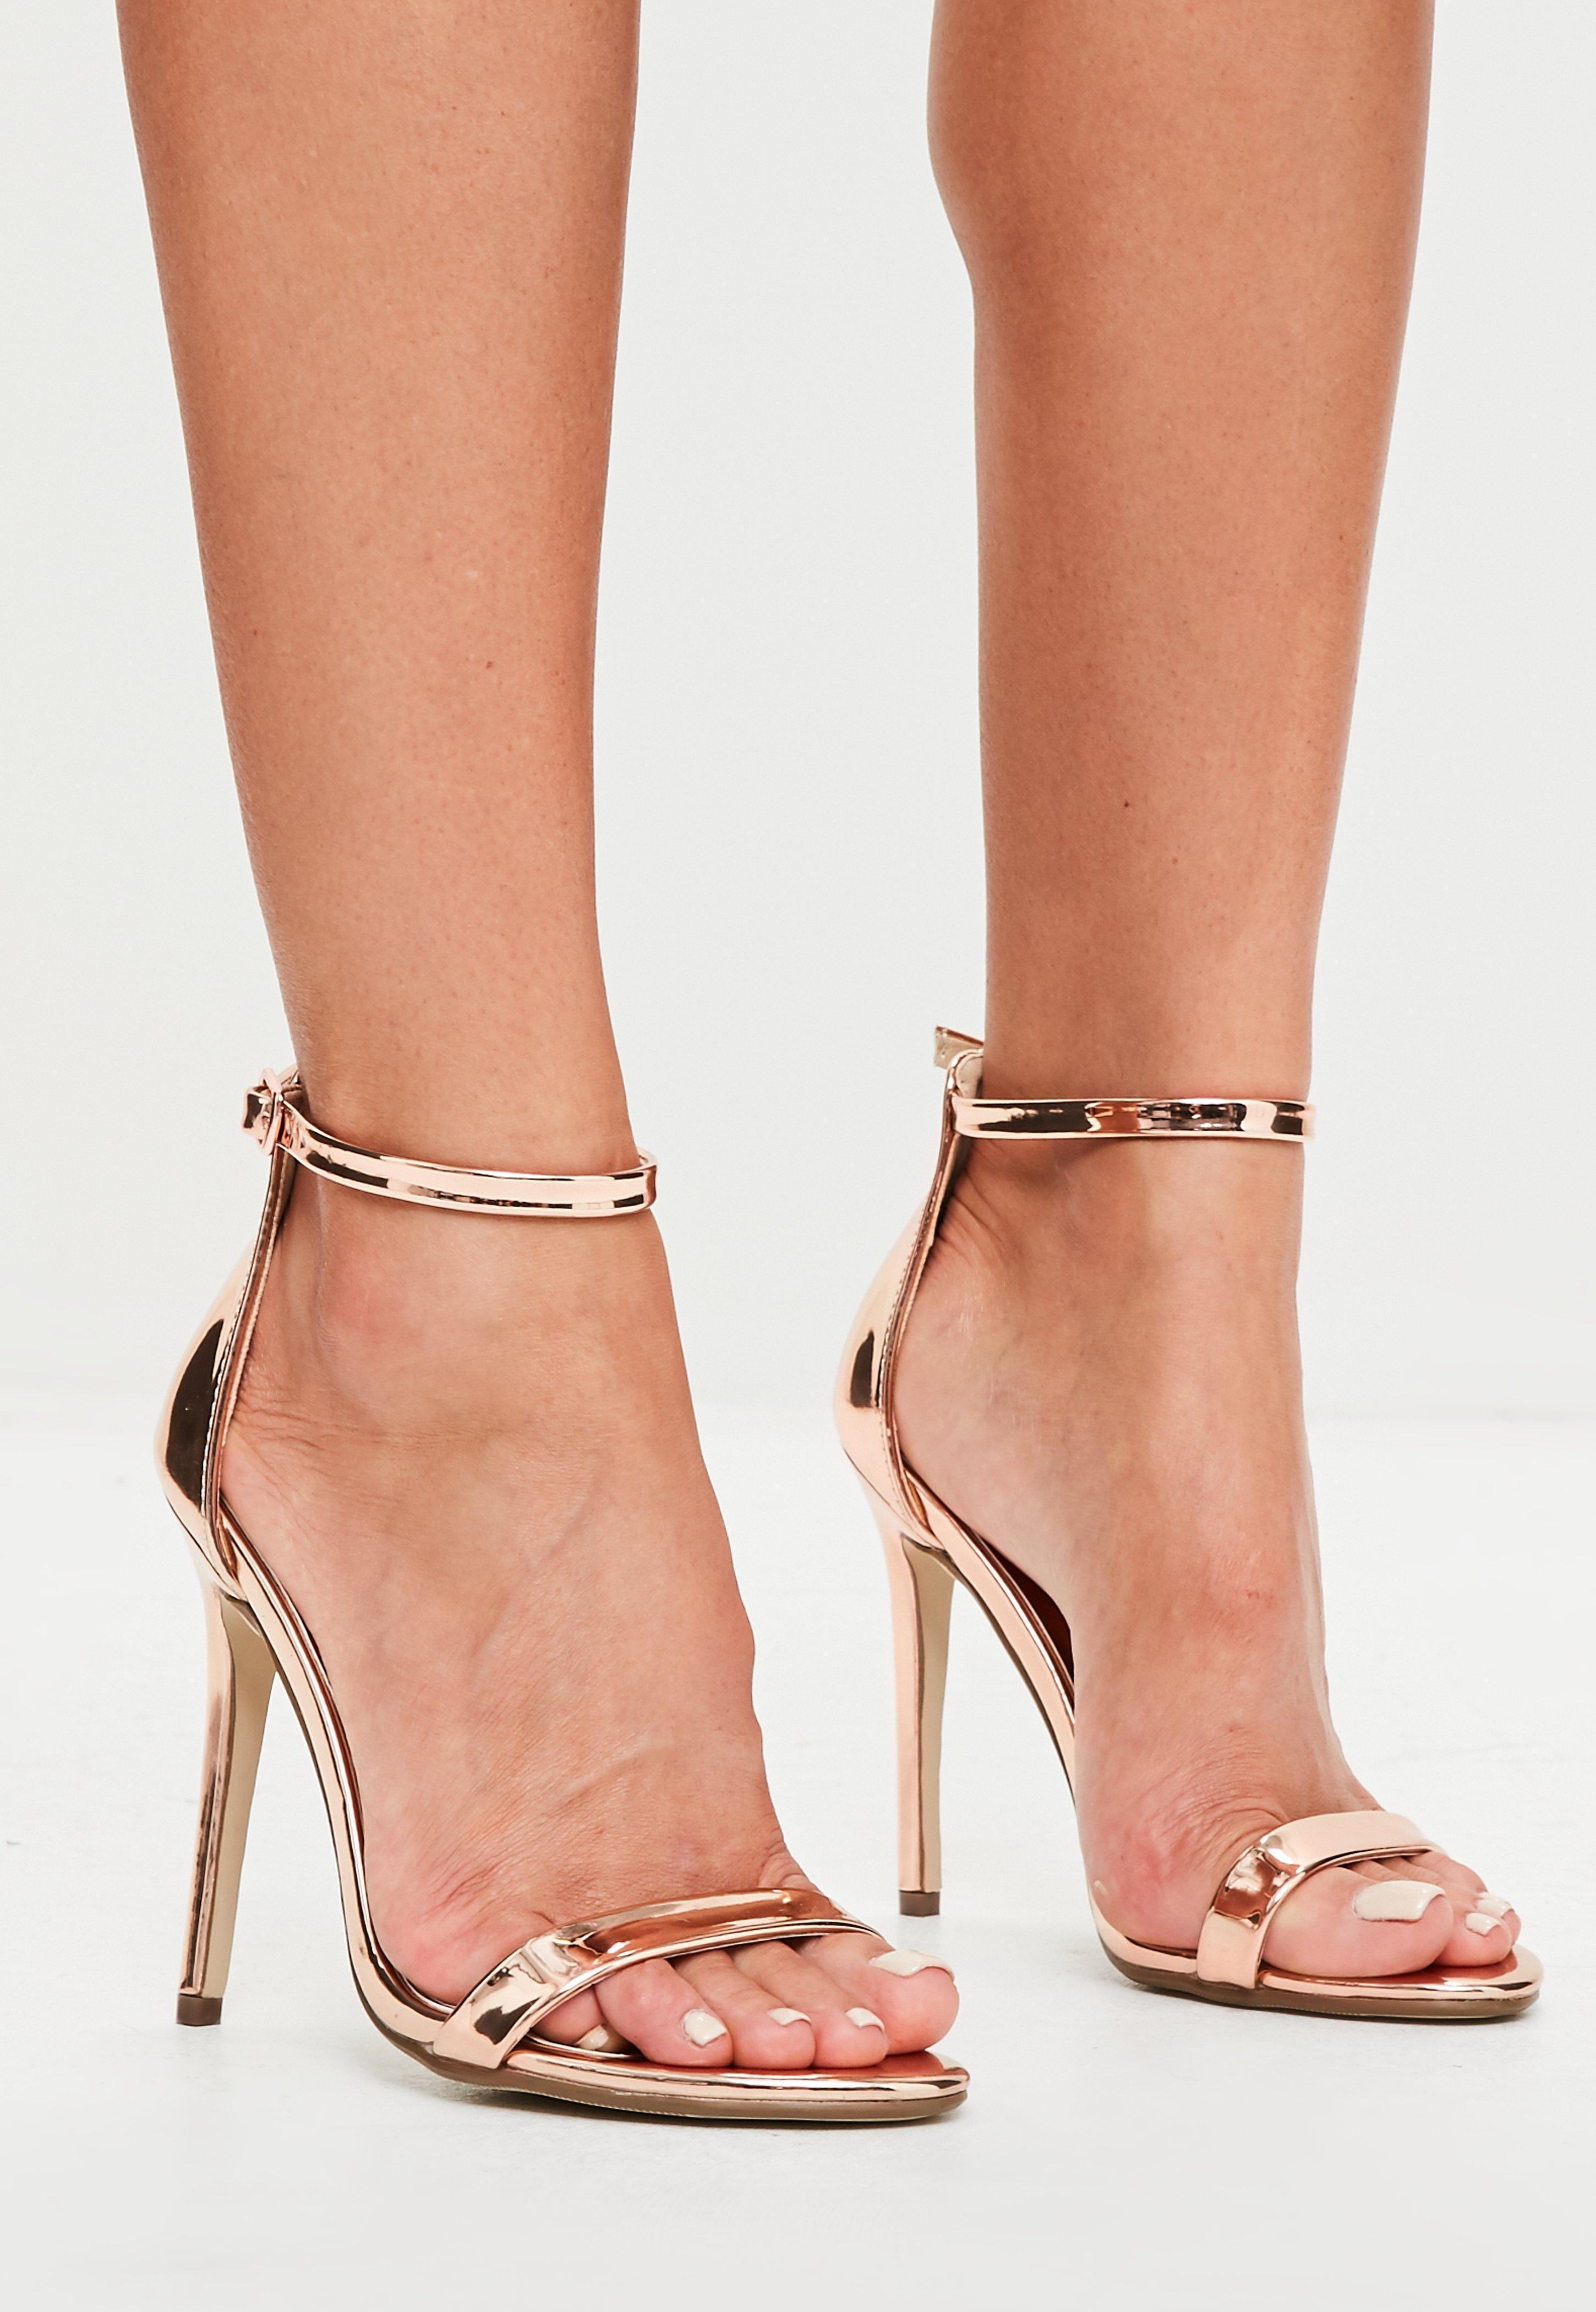 52e964447548 Lyst - Missguided Rose Gold Two Straps Barely There Sandals - Save 82%